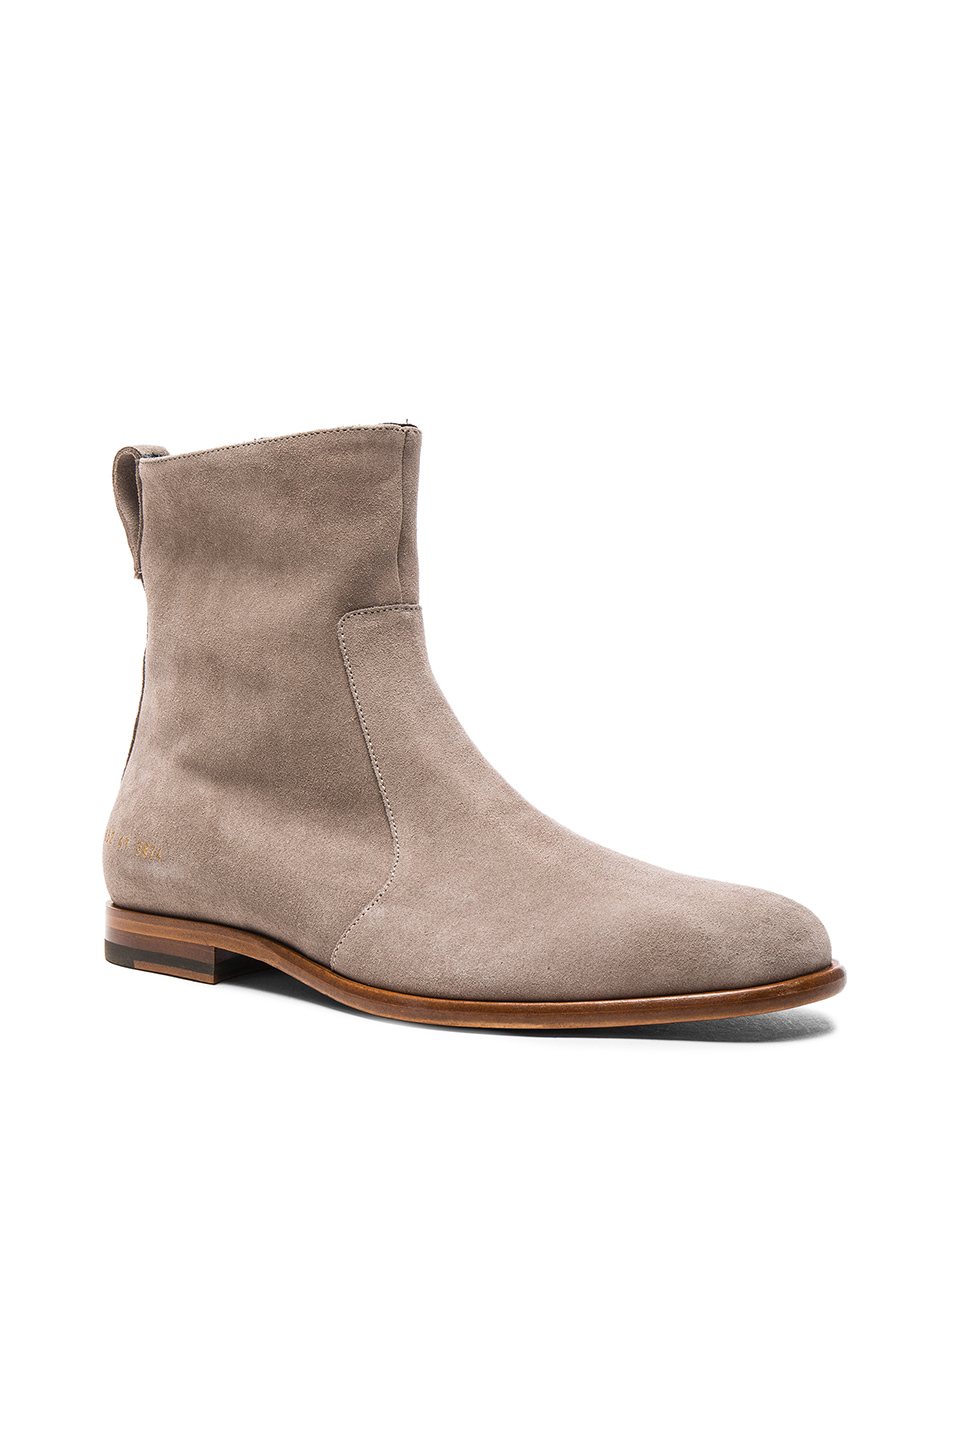 Robert Geller x Common Projects Suede Chelsea Boots in Gray